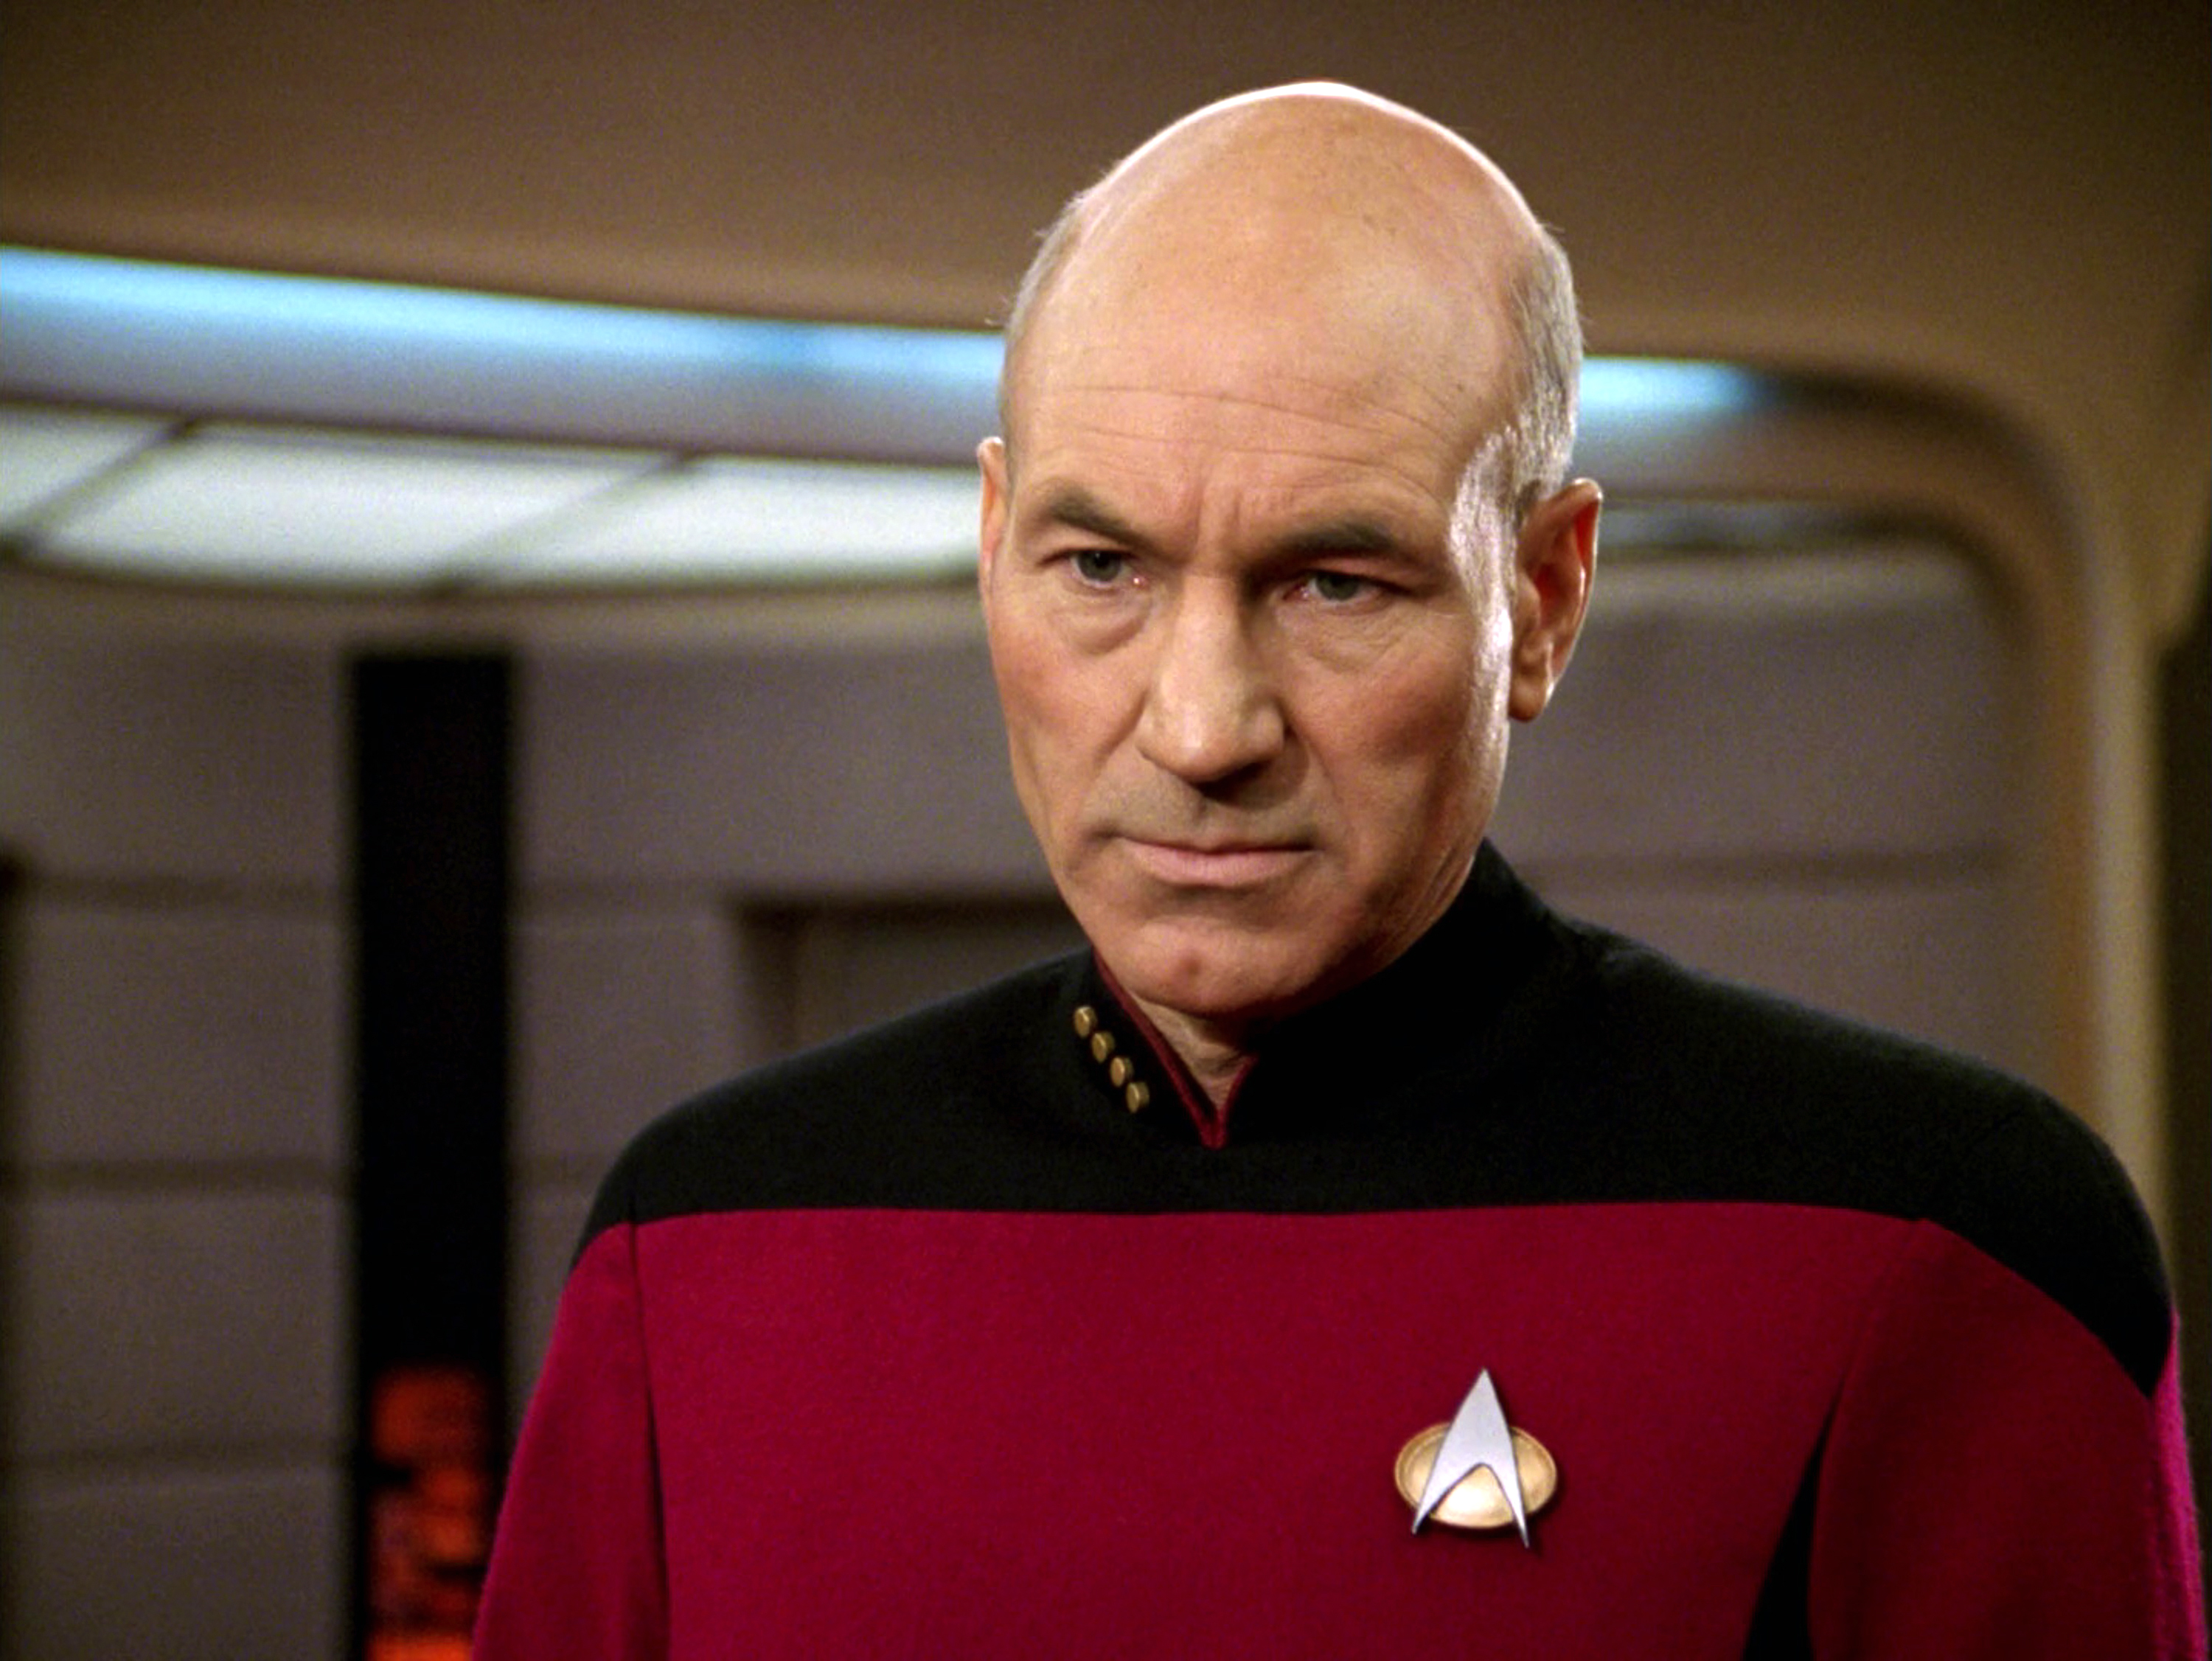 LOS ANGELES - JANUARY 8: Patrick Stewart as Captain Jean-Luc Picard in the STAR TREK: THE NEXT GENERATION episode,  The Hunted.  Season 3, episode 11.  Original air date, January 8, 1990.  (Photo by CBS via Getty Images)